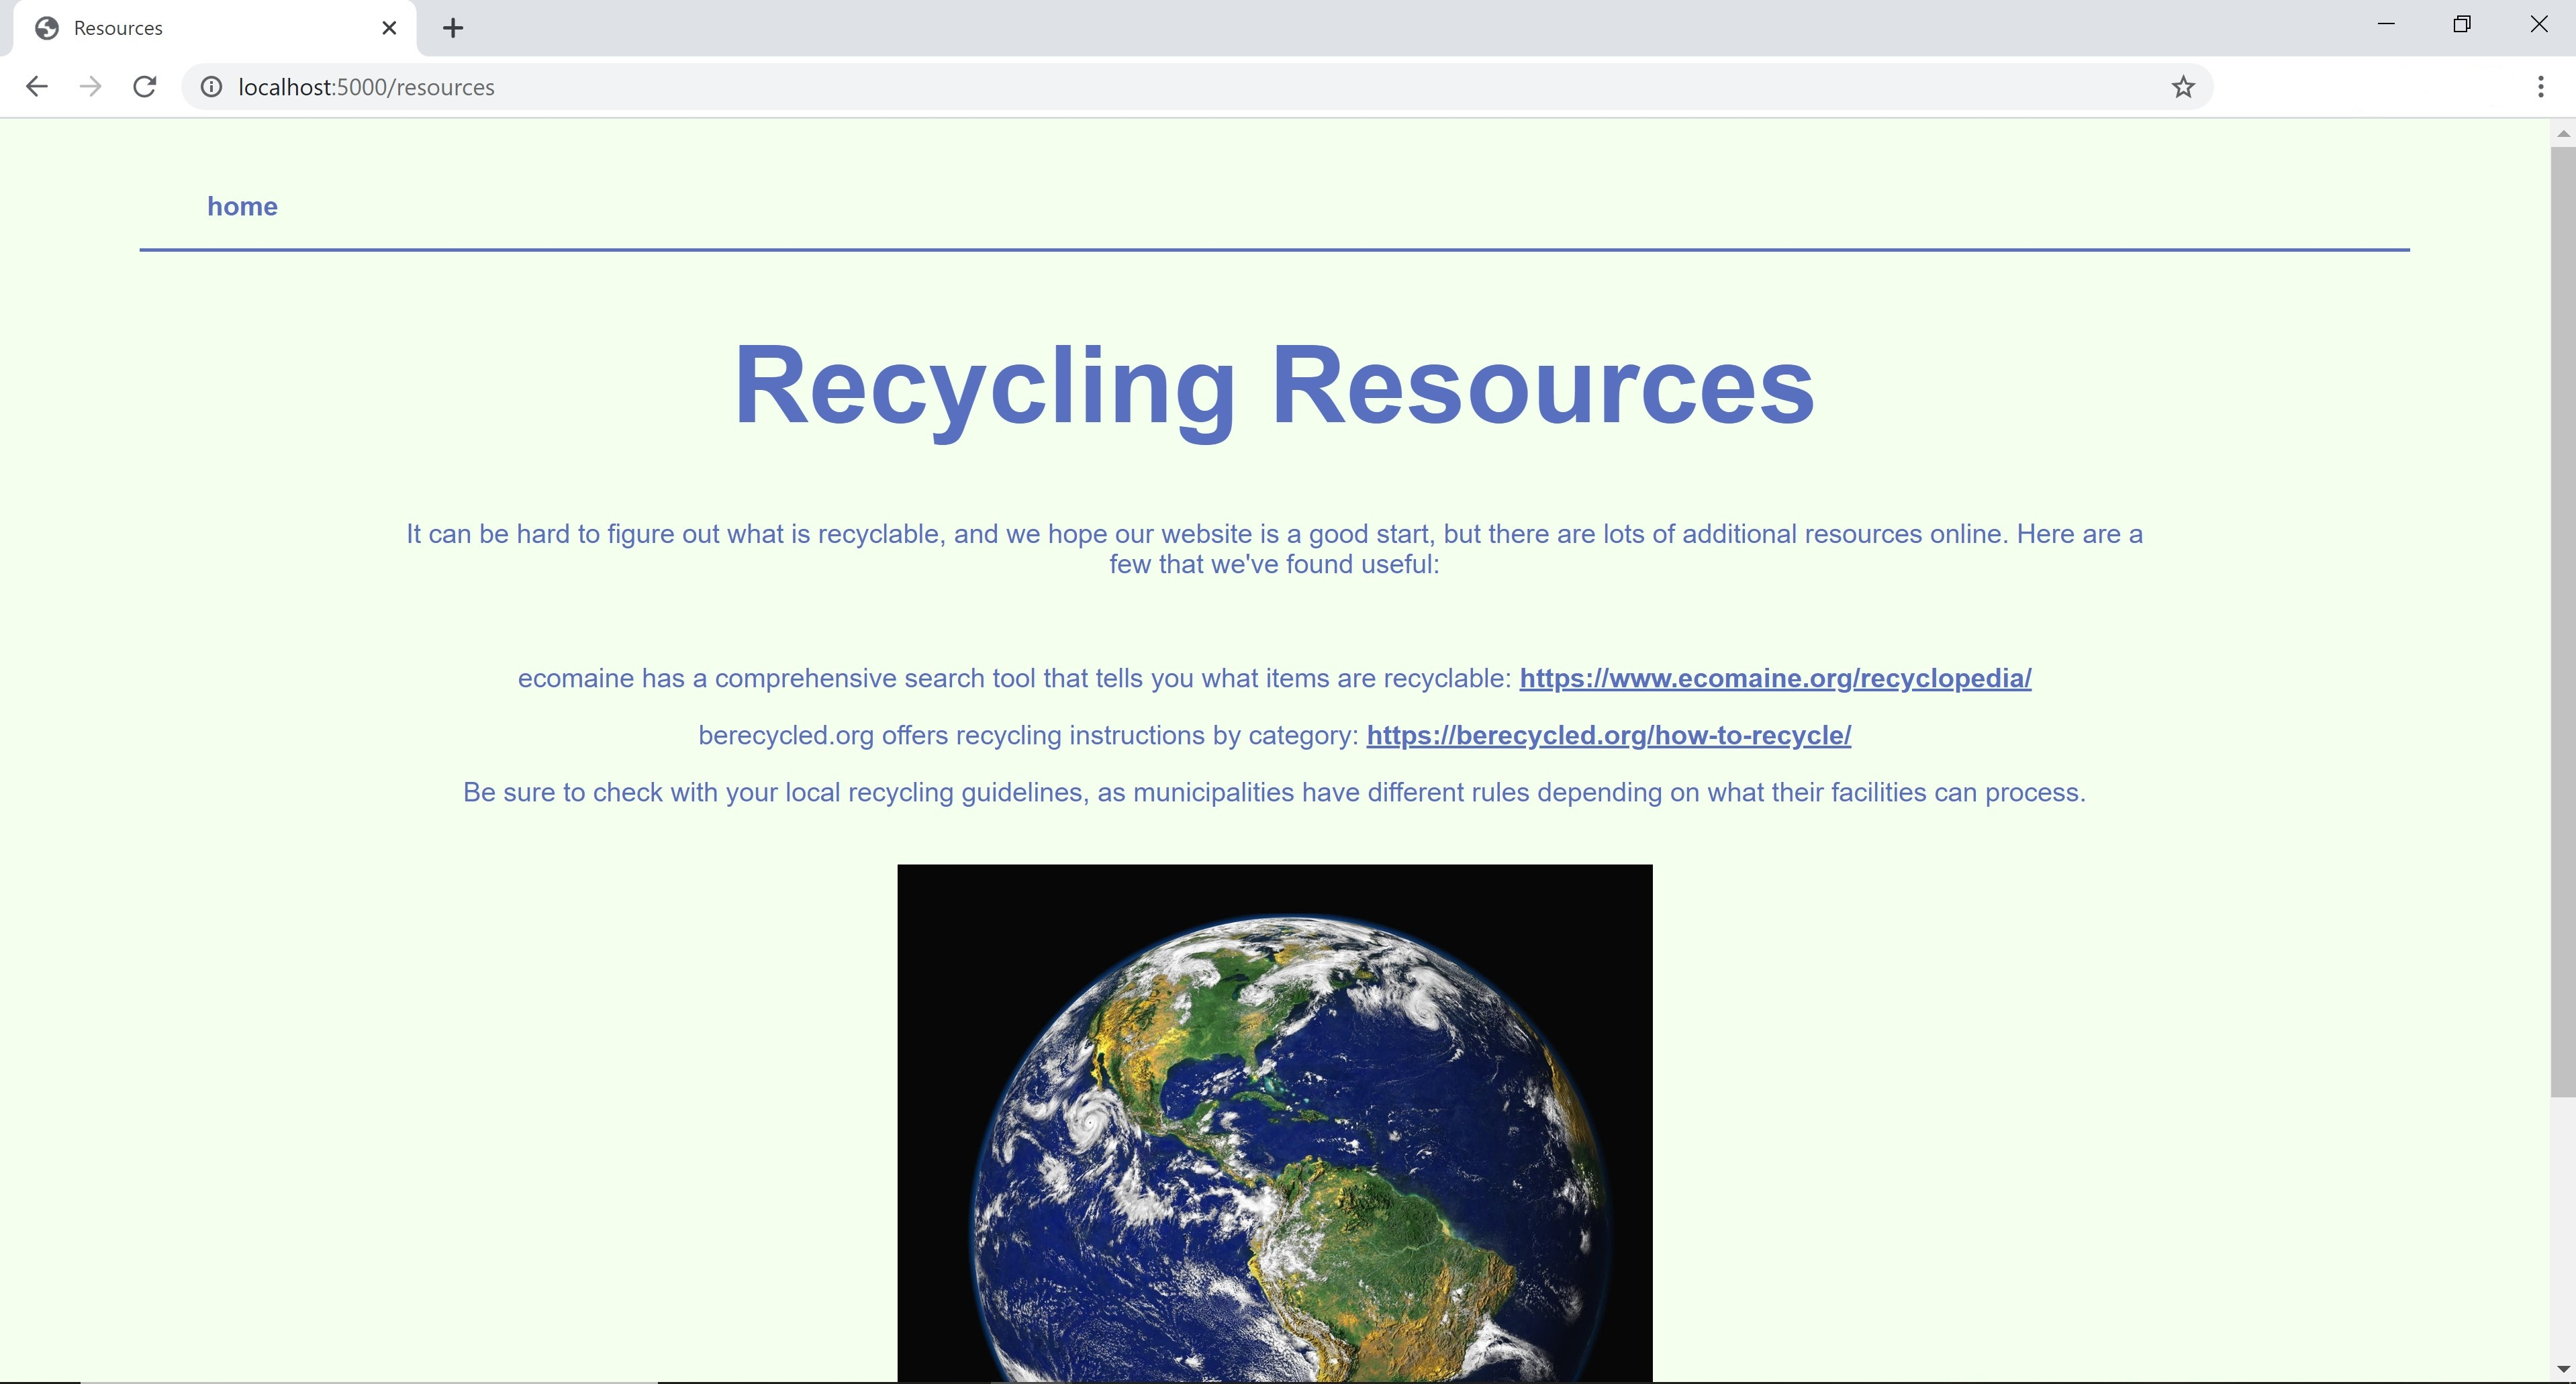 screenshot of Resources page of the site, with additional links to recycling information